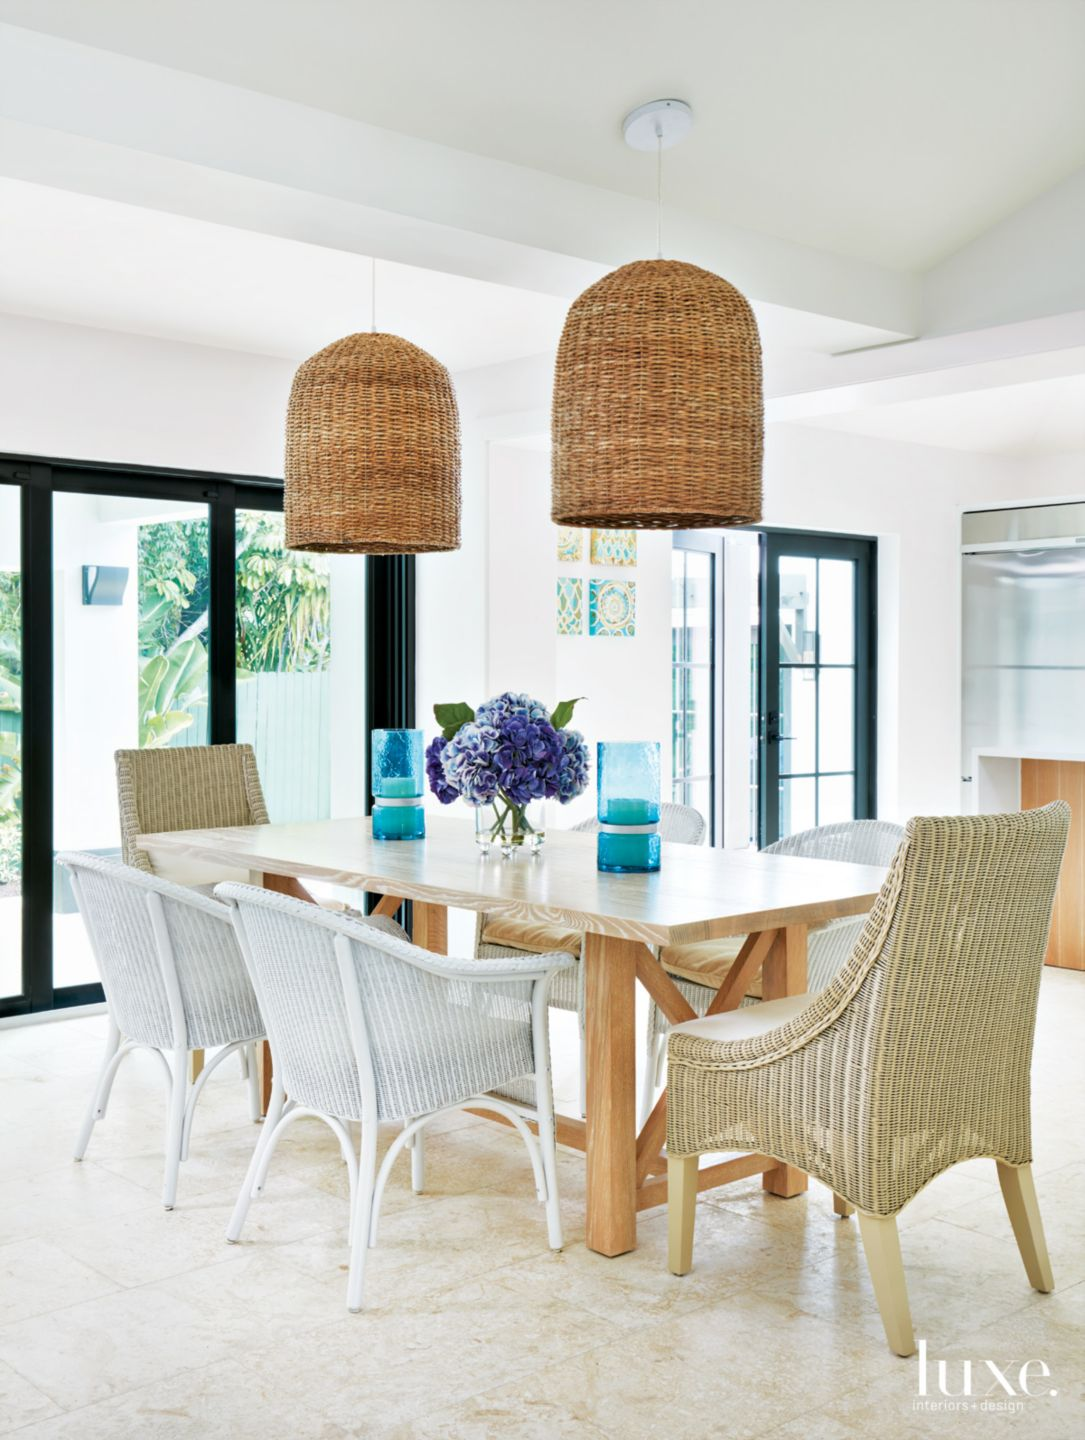 Modern White Dining Room with Basket Chandeliers